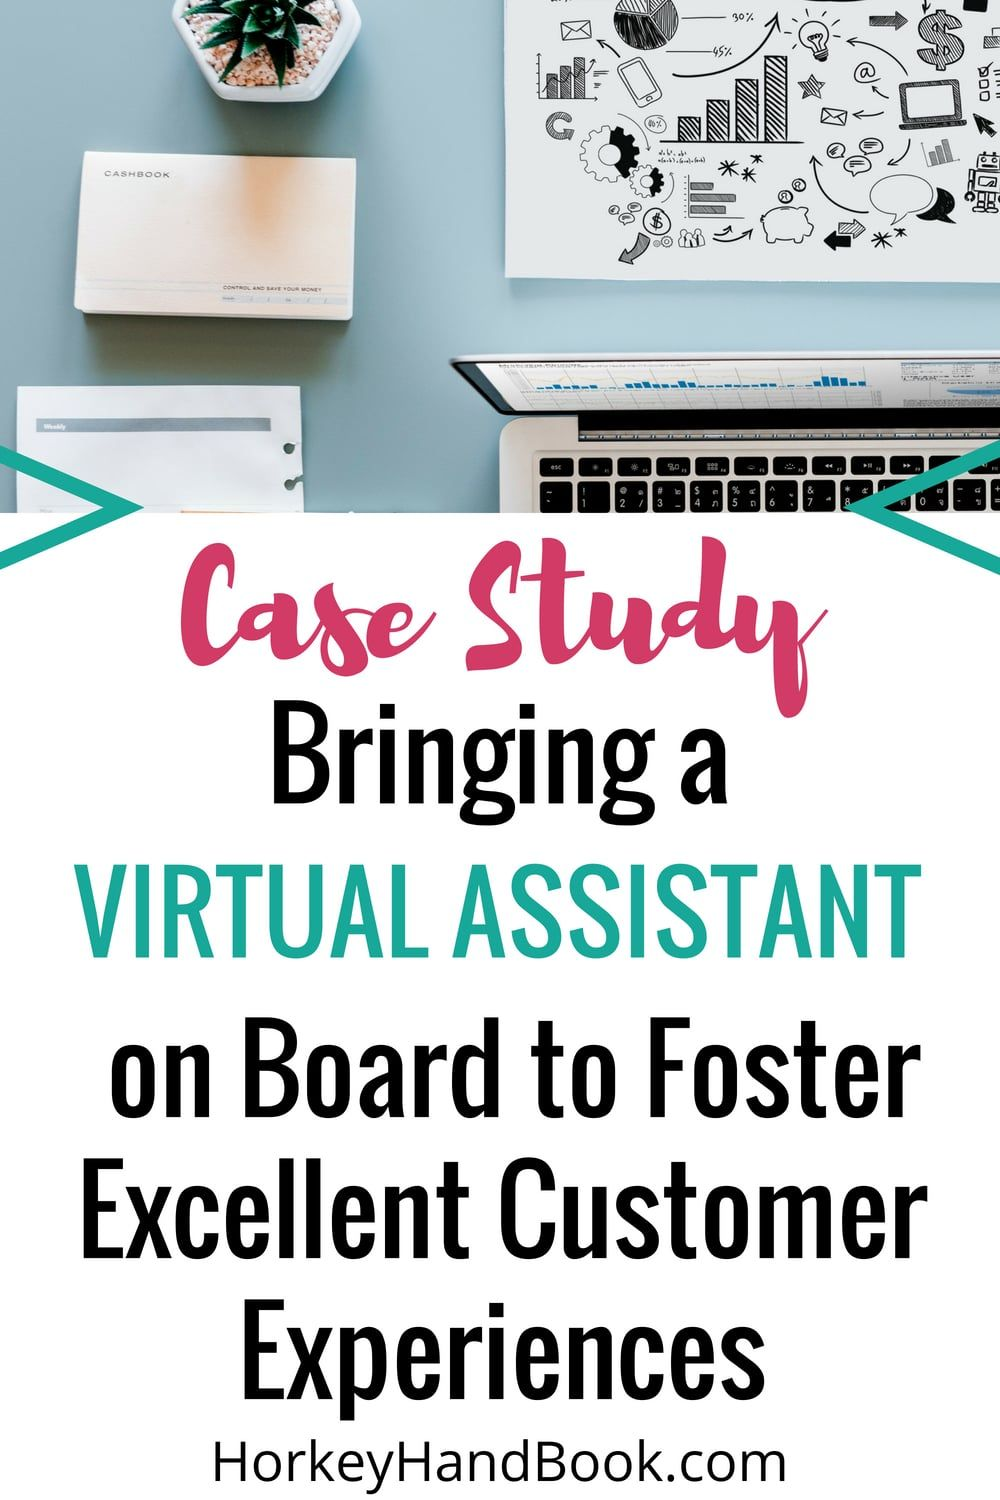 Want better customer experience? Hire a virtual assistant